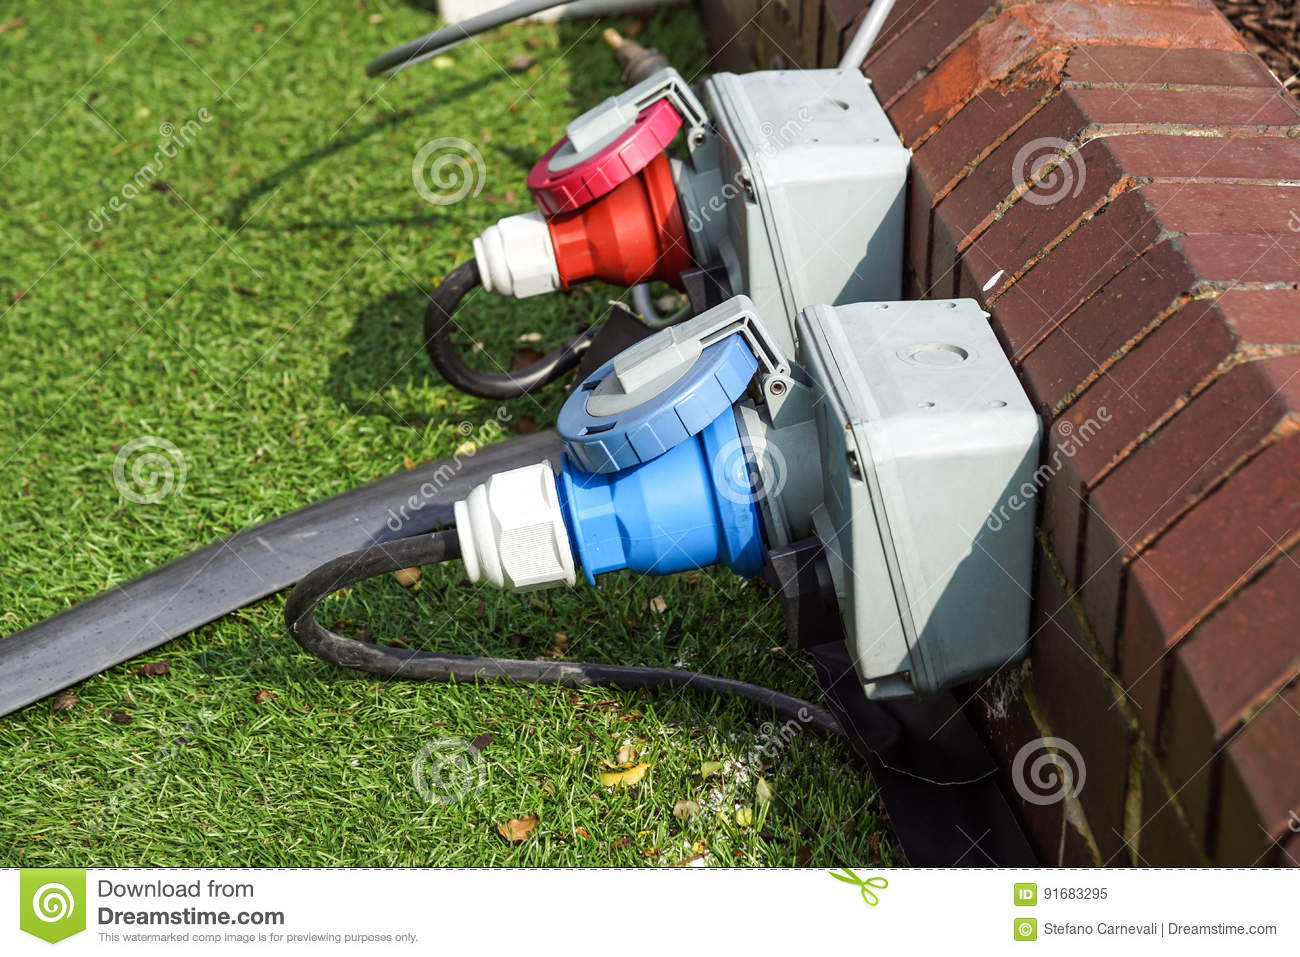 An electric socket timer with cord attached. This one is used outdoors in damp weather which might present a safety